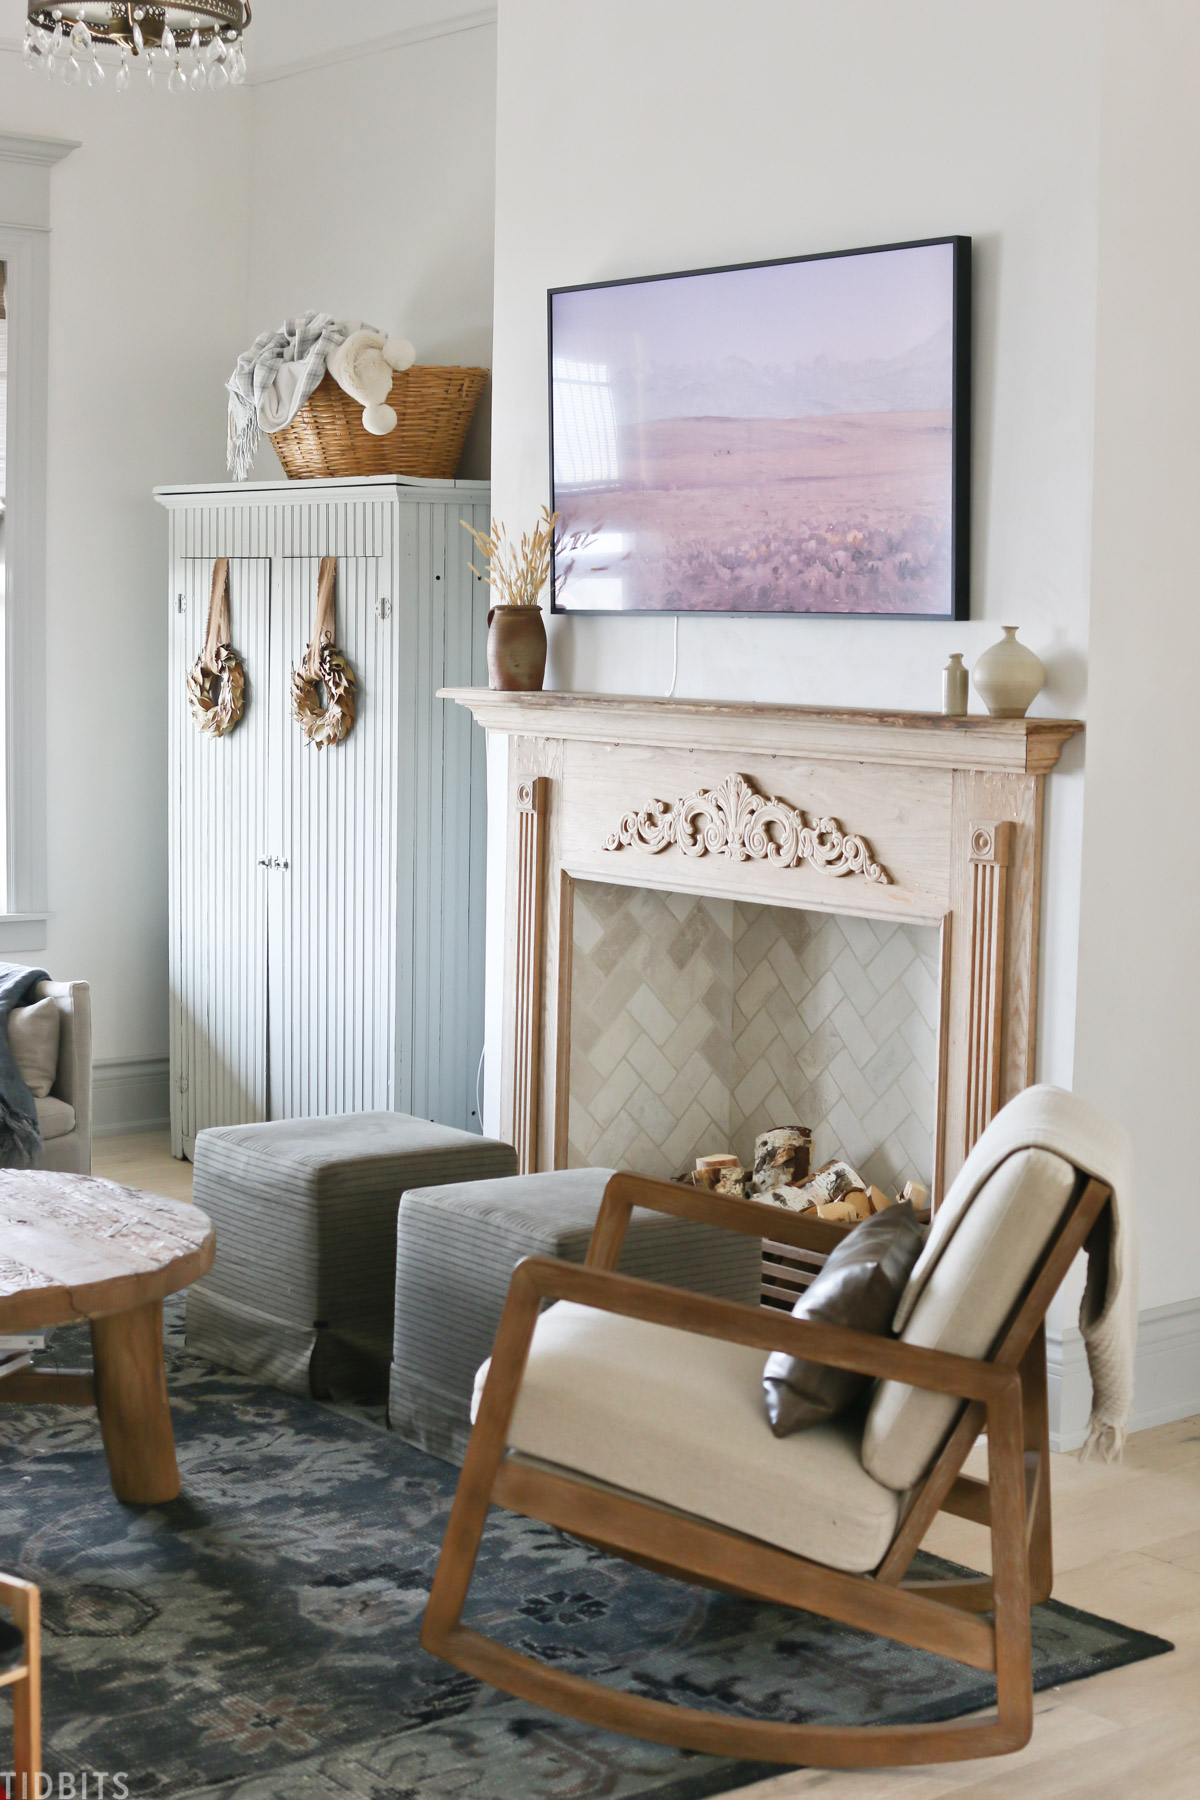 faux fireplace mantel with wood placed inside fireplace and Samsung TV Frame above mantel